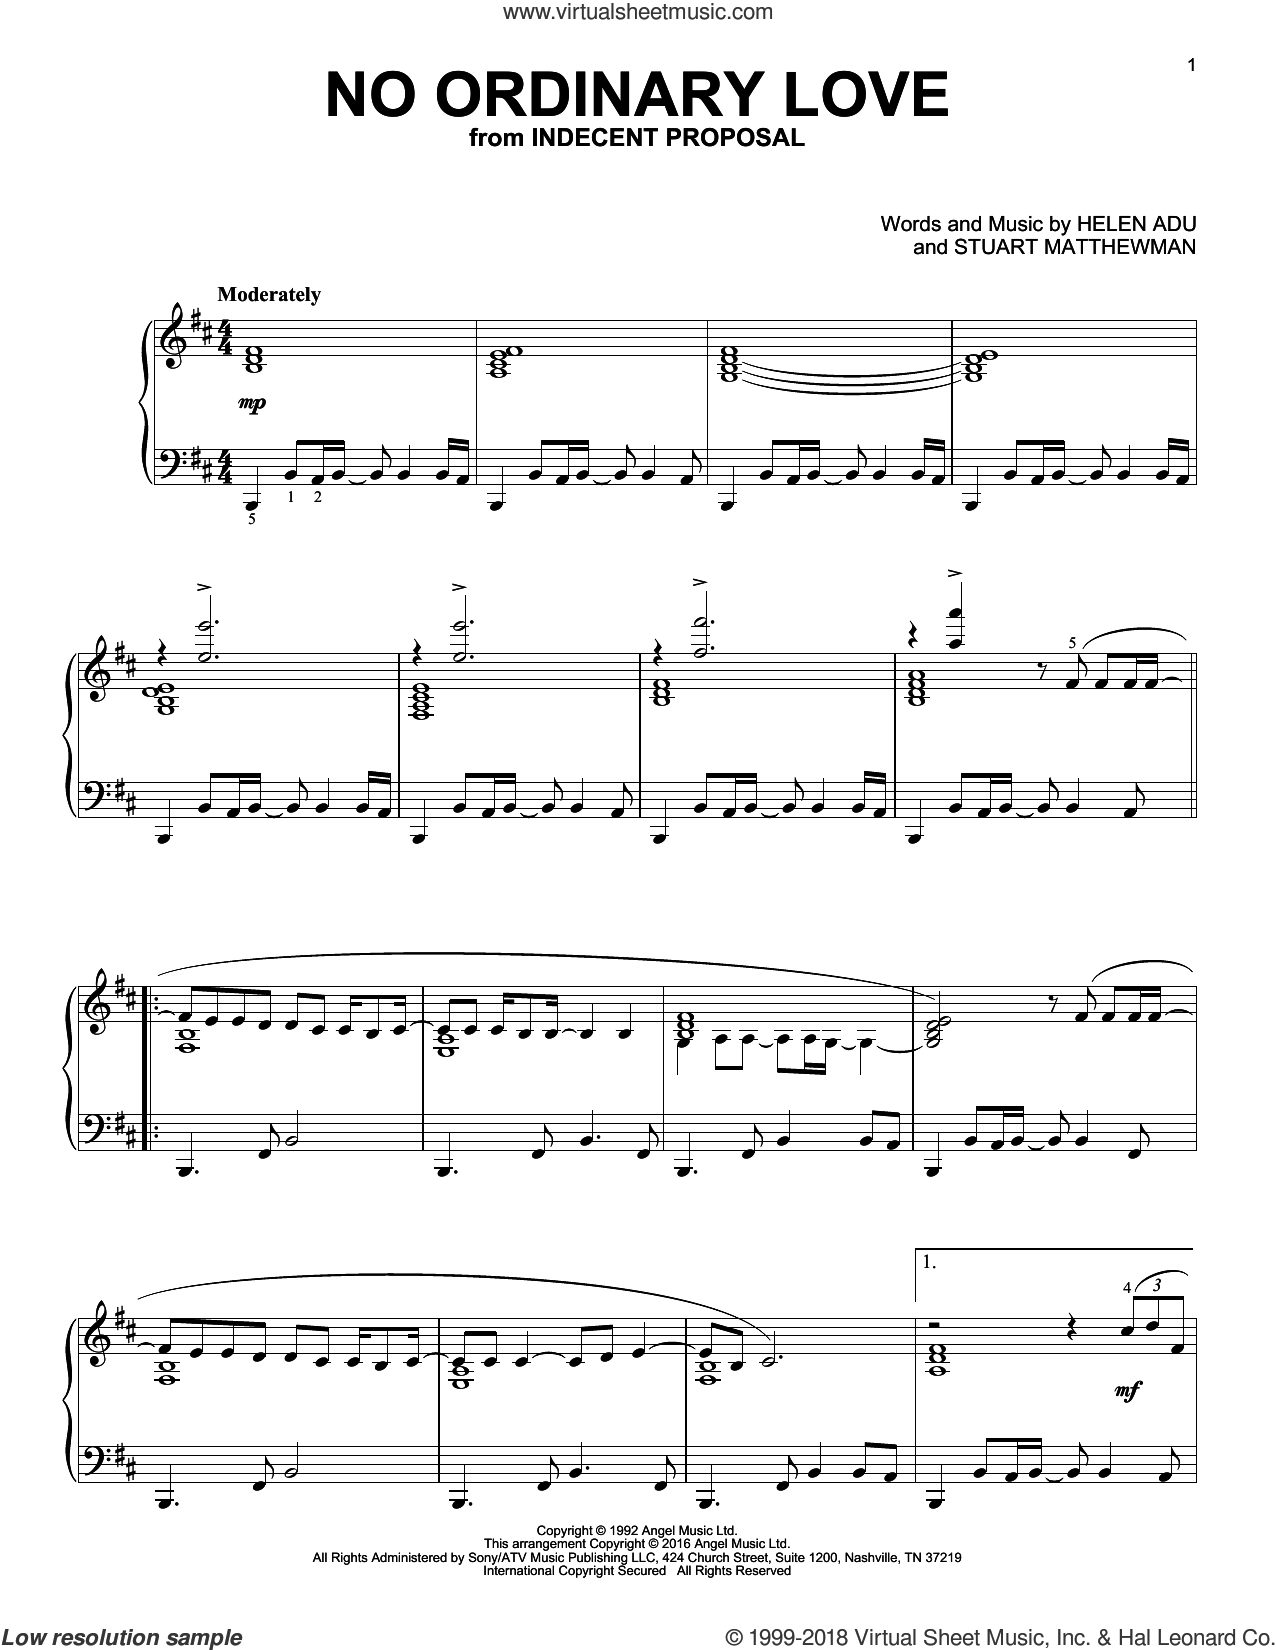 No Ordinary Love sheet music for piano solo by Sade, Helen Adu and Stuart Matthewman, intermediate skill level